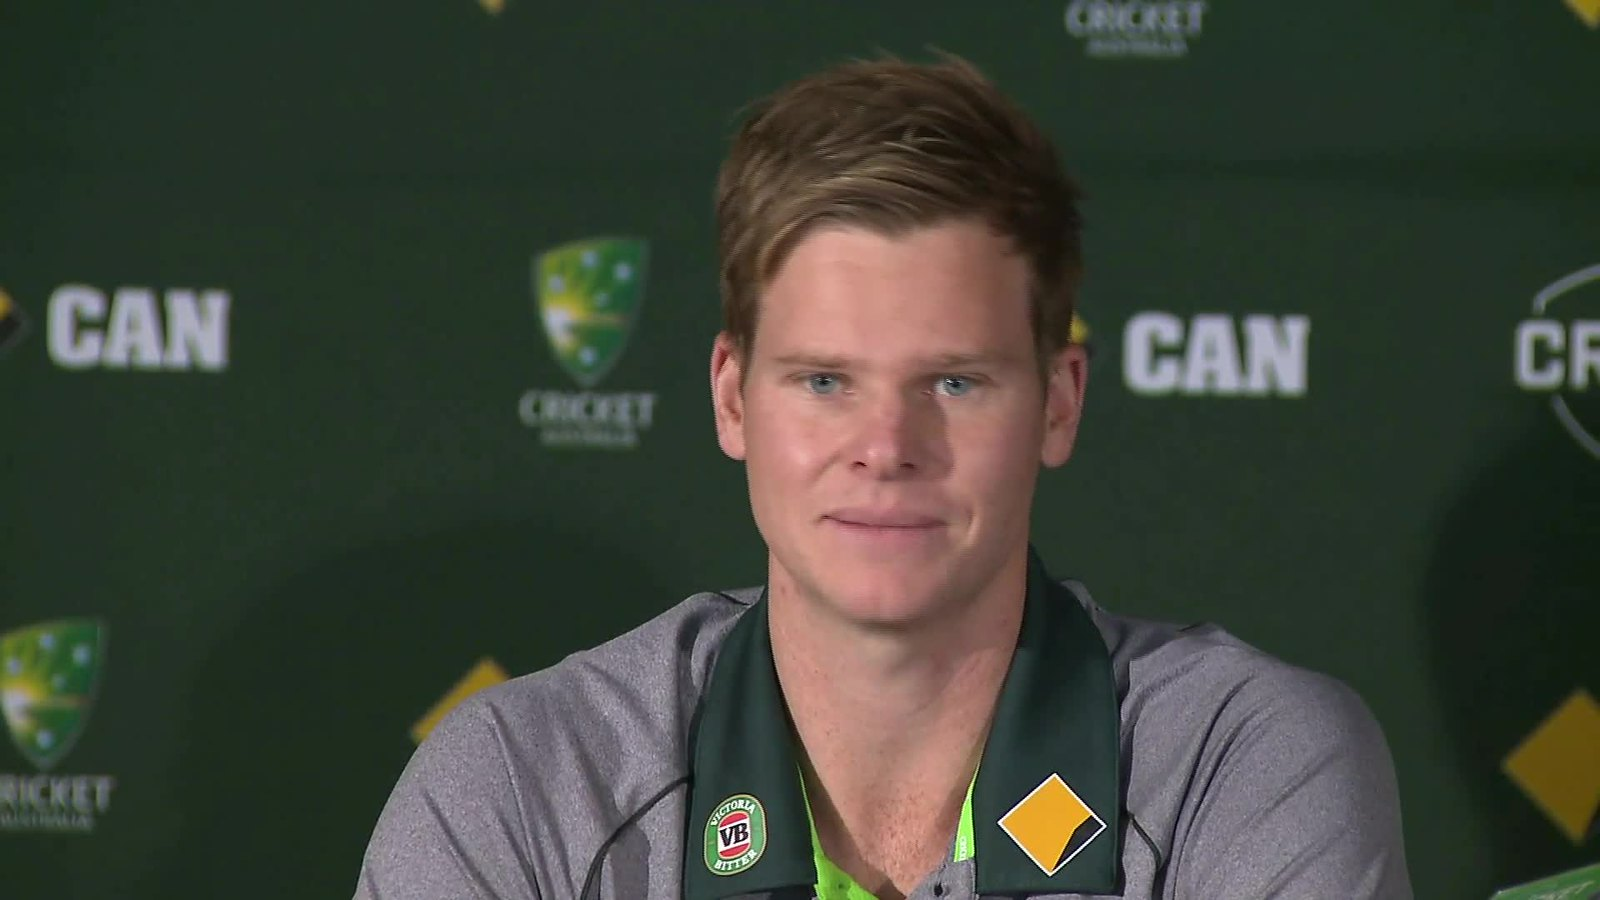 Steven Smith HD Wallpapers